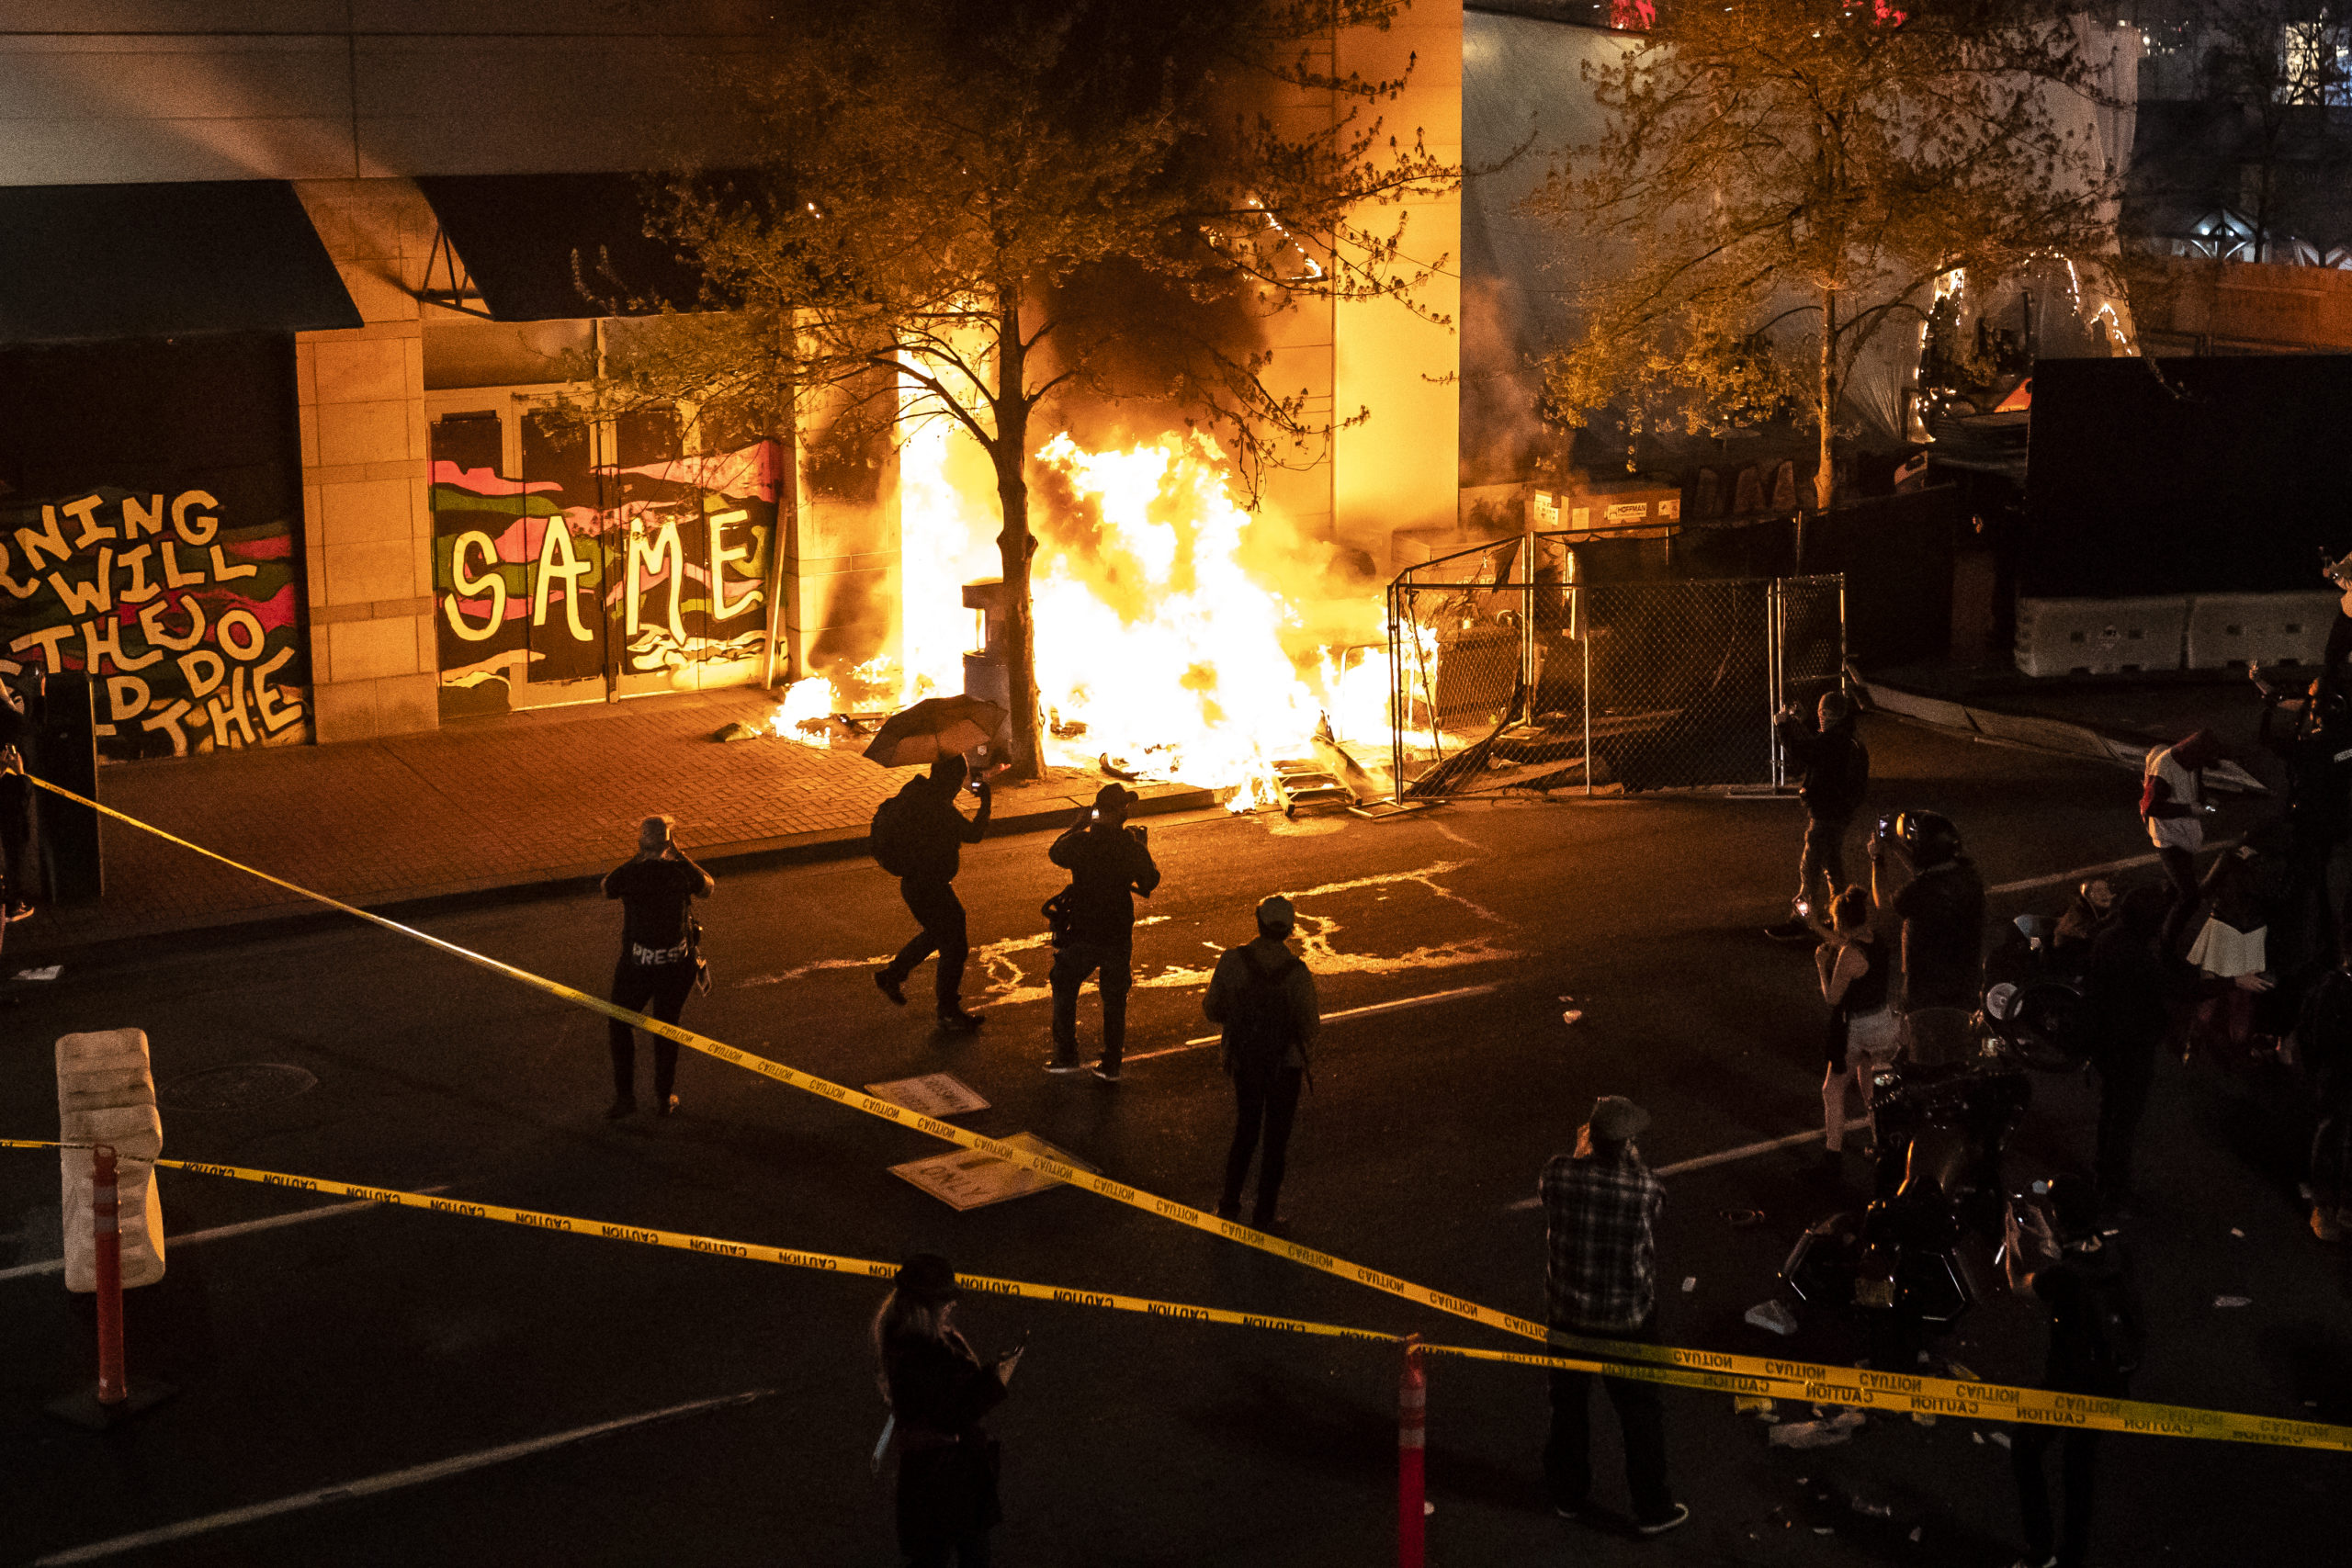 PORTLAND, OR - APRIL 17: Protesters watch a structure fire, set following the police shooting of a homeless man on April 17, 2021 in Portland, Oregon. The shooting comes amid heightened tensions between police and activists as the country awaits a verdict in the trial of Derek Chauvin. (Photo by Nathan Howard/Getty Images)